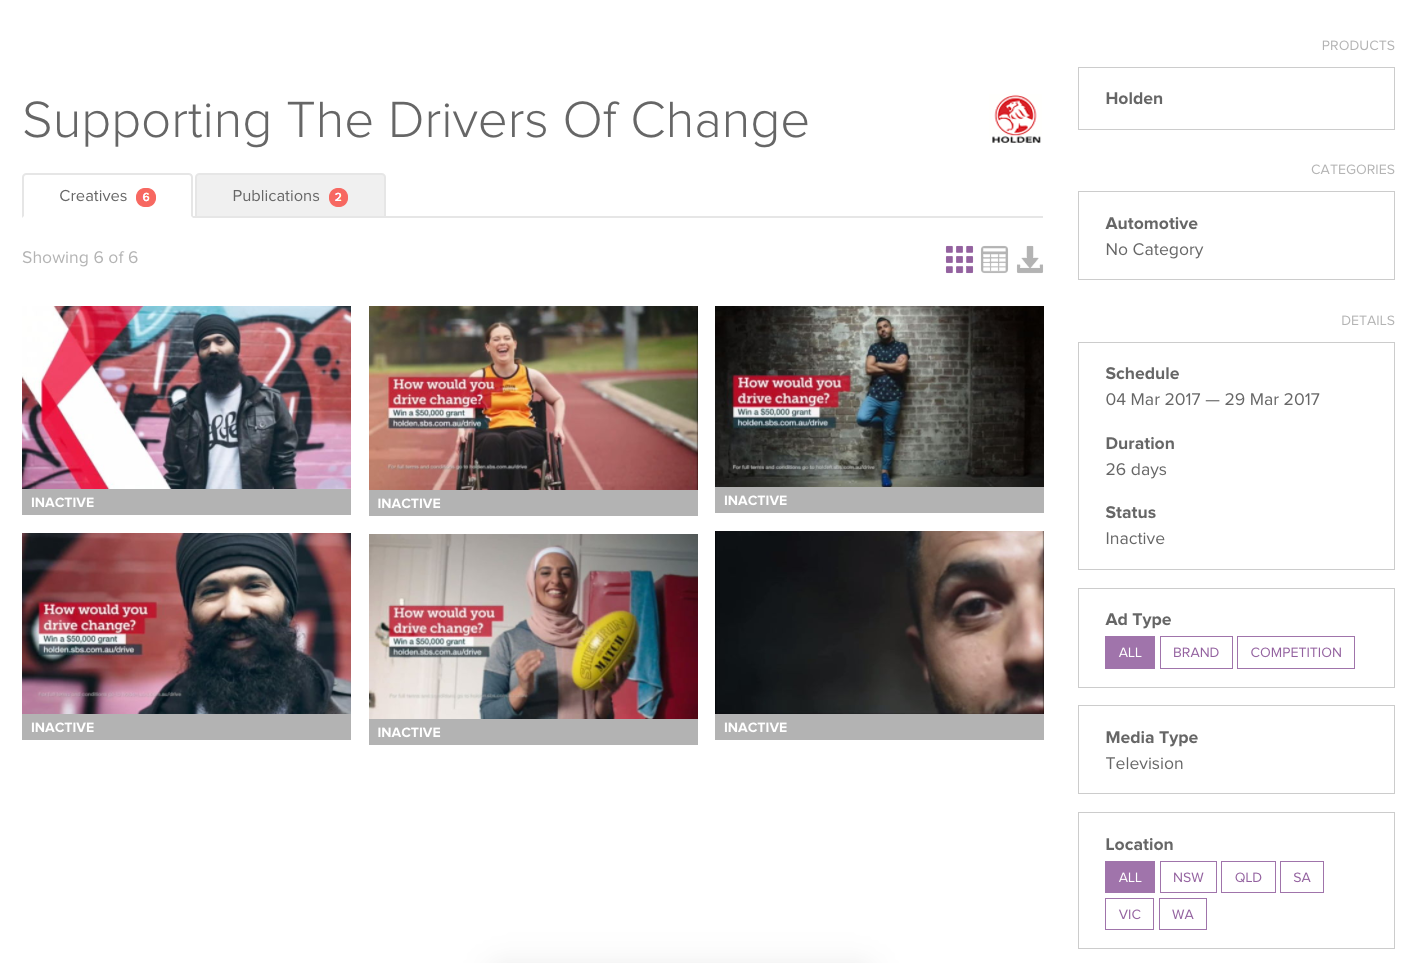 Above: Holden's campaign 'Supporting The Drivers of Change' from BigDatr's  Campaign Library  dashboard.